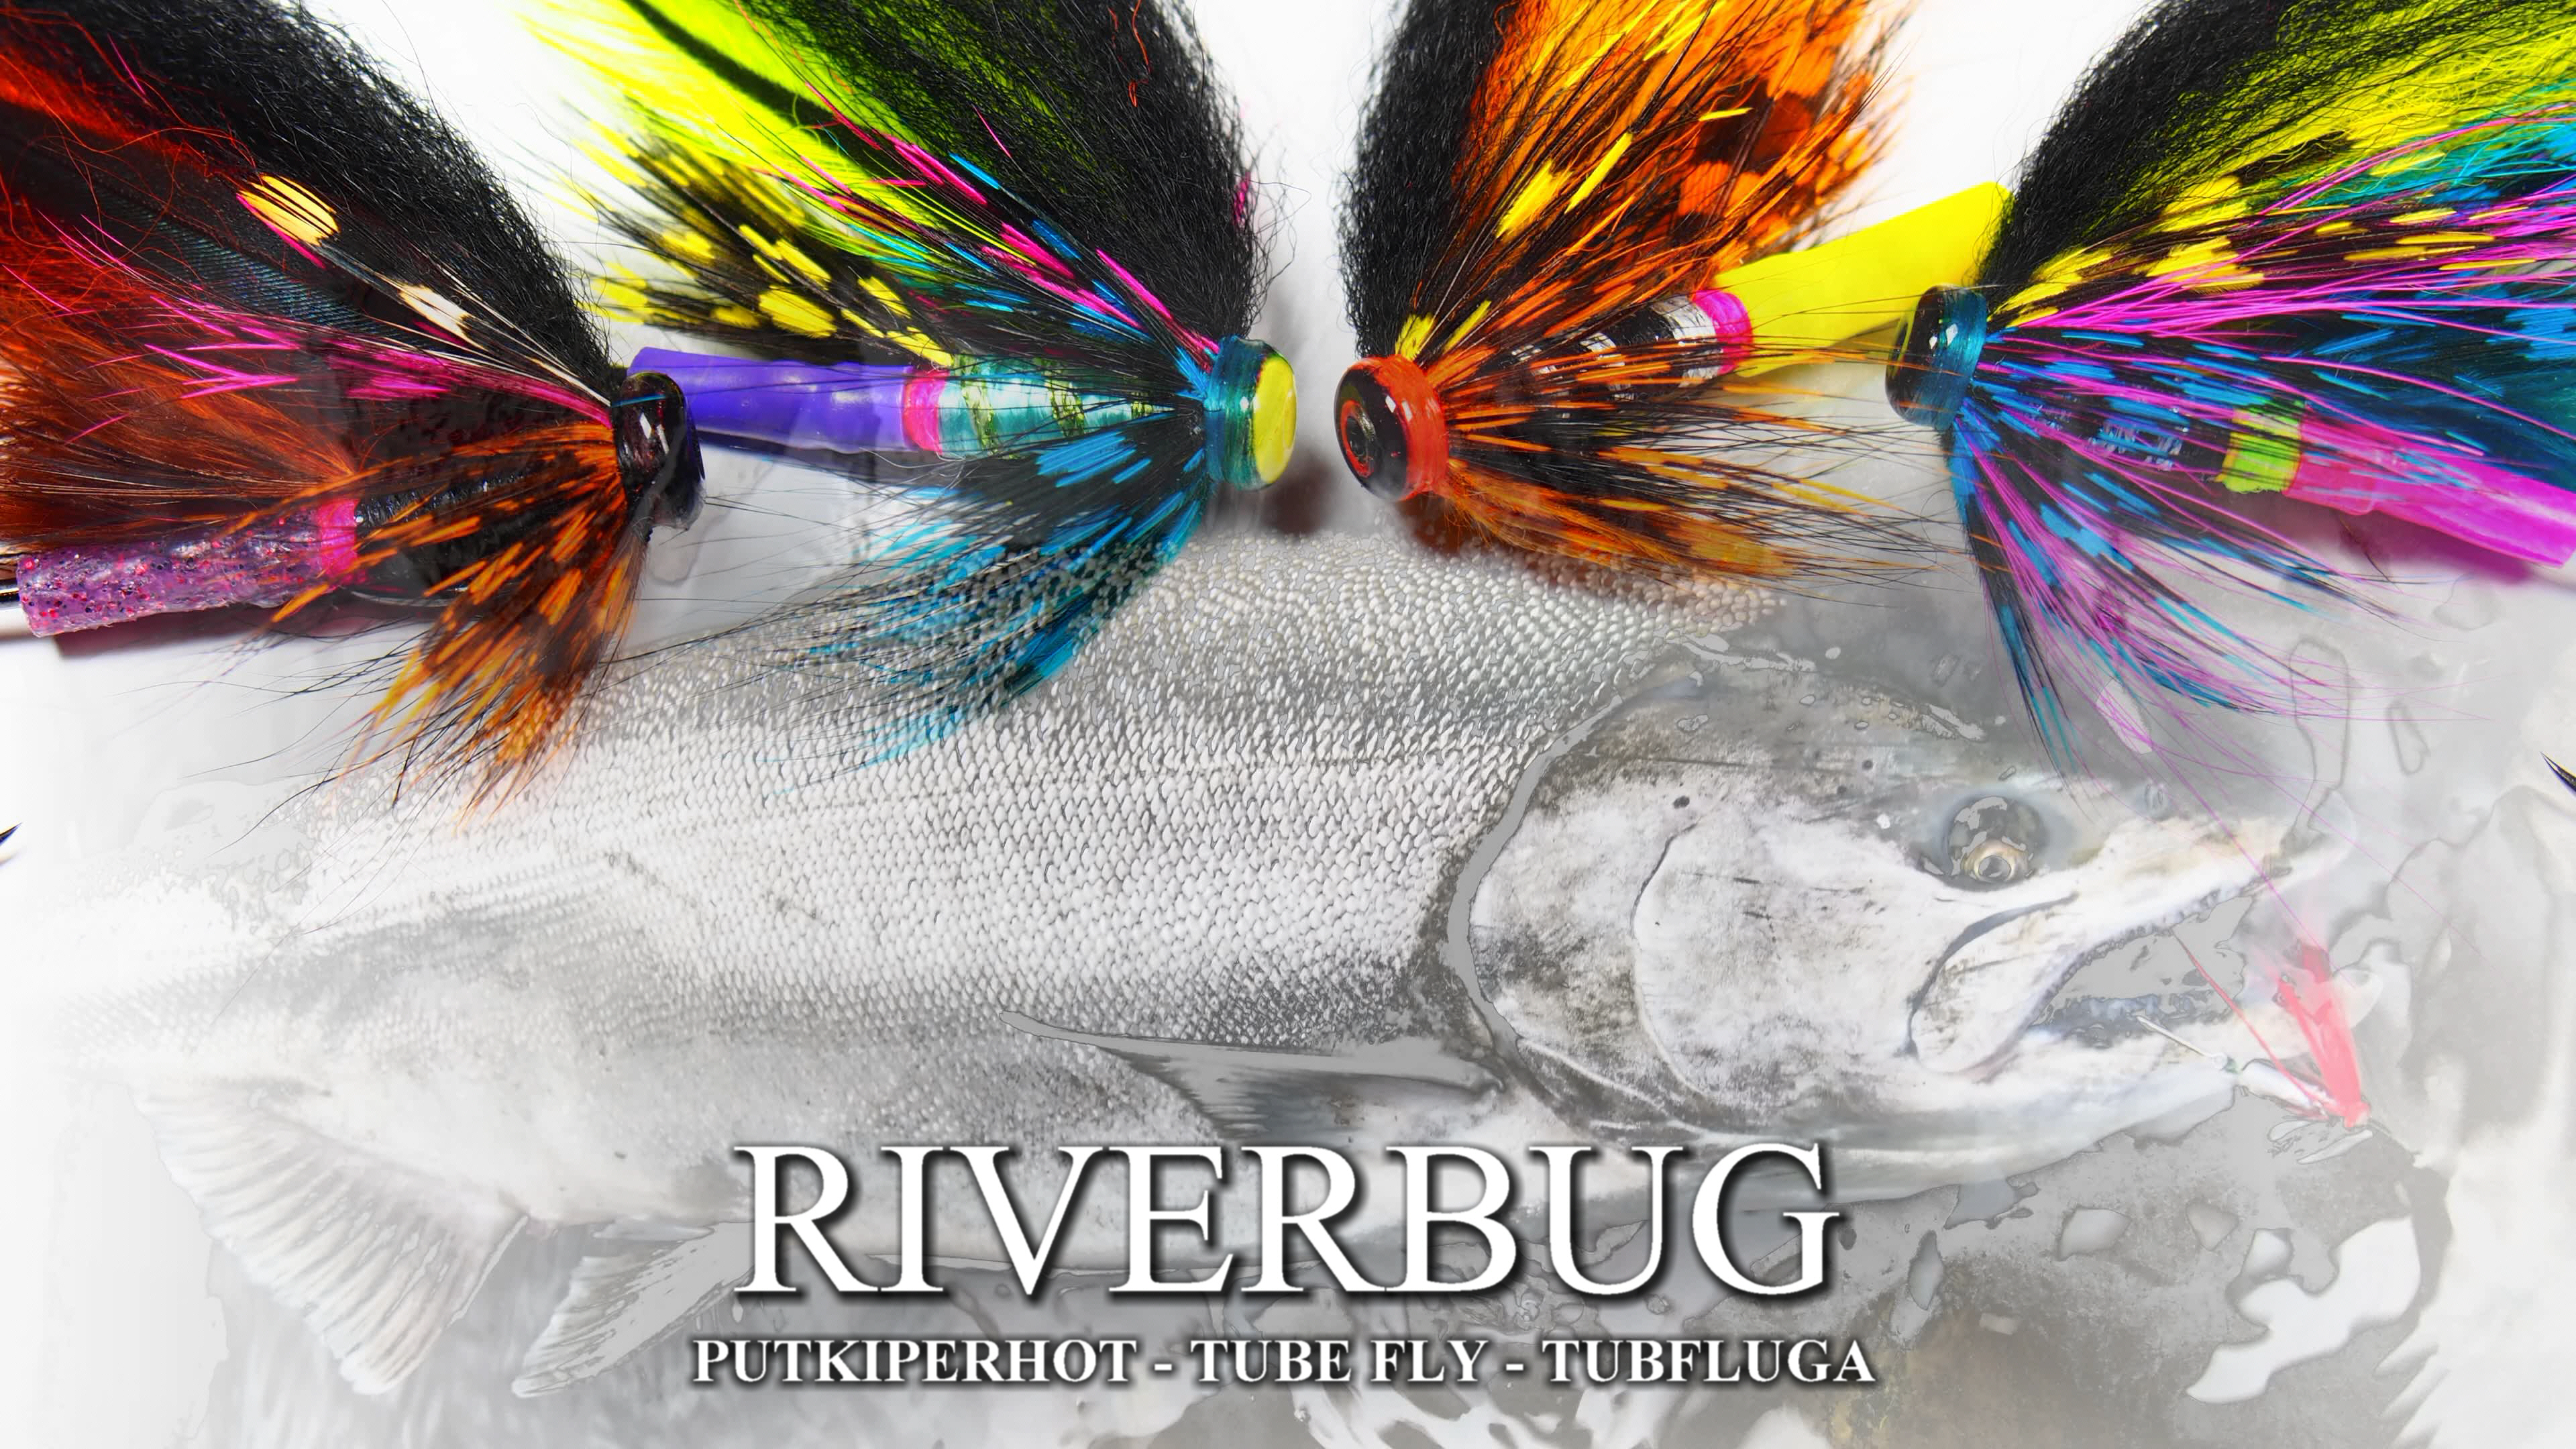 These RiverBug 2.0 tube flies are easy to make and highly good for salmon and trout! #tubfluga #tubefly #putkiperhot #finnlures #kettuperho #riverbug #matkakoski #DIY #art #finland #sweden #flytying